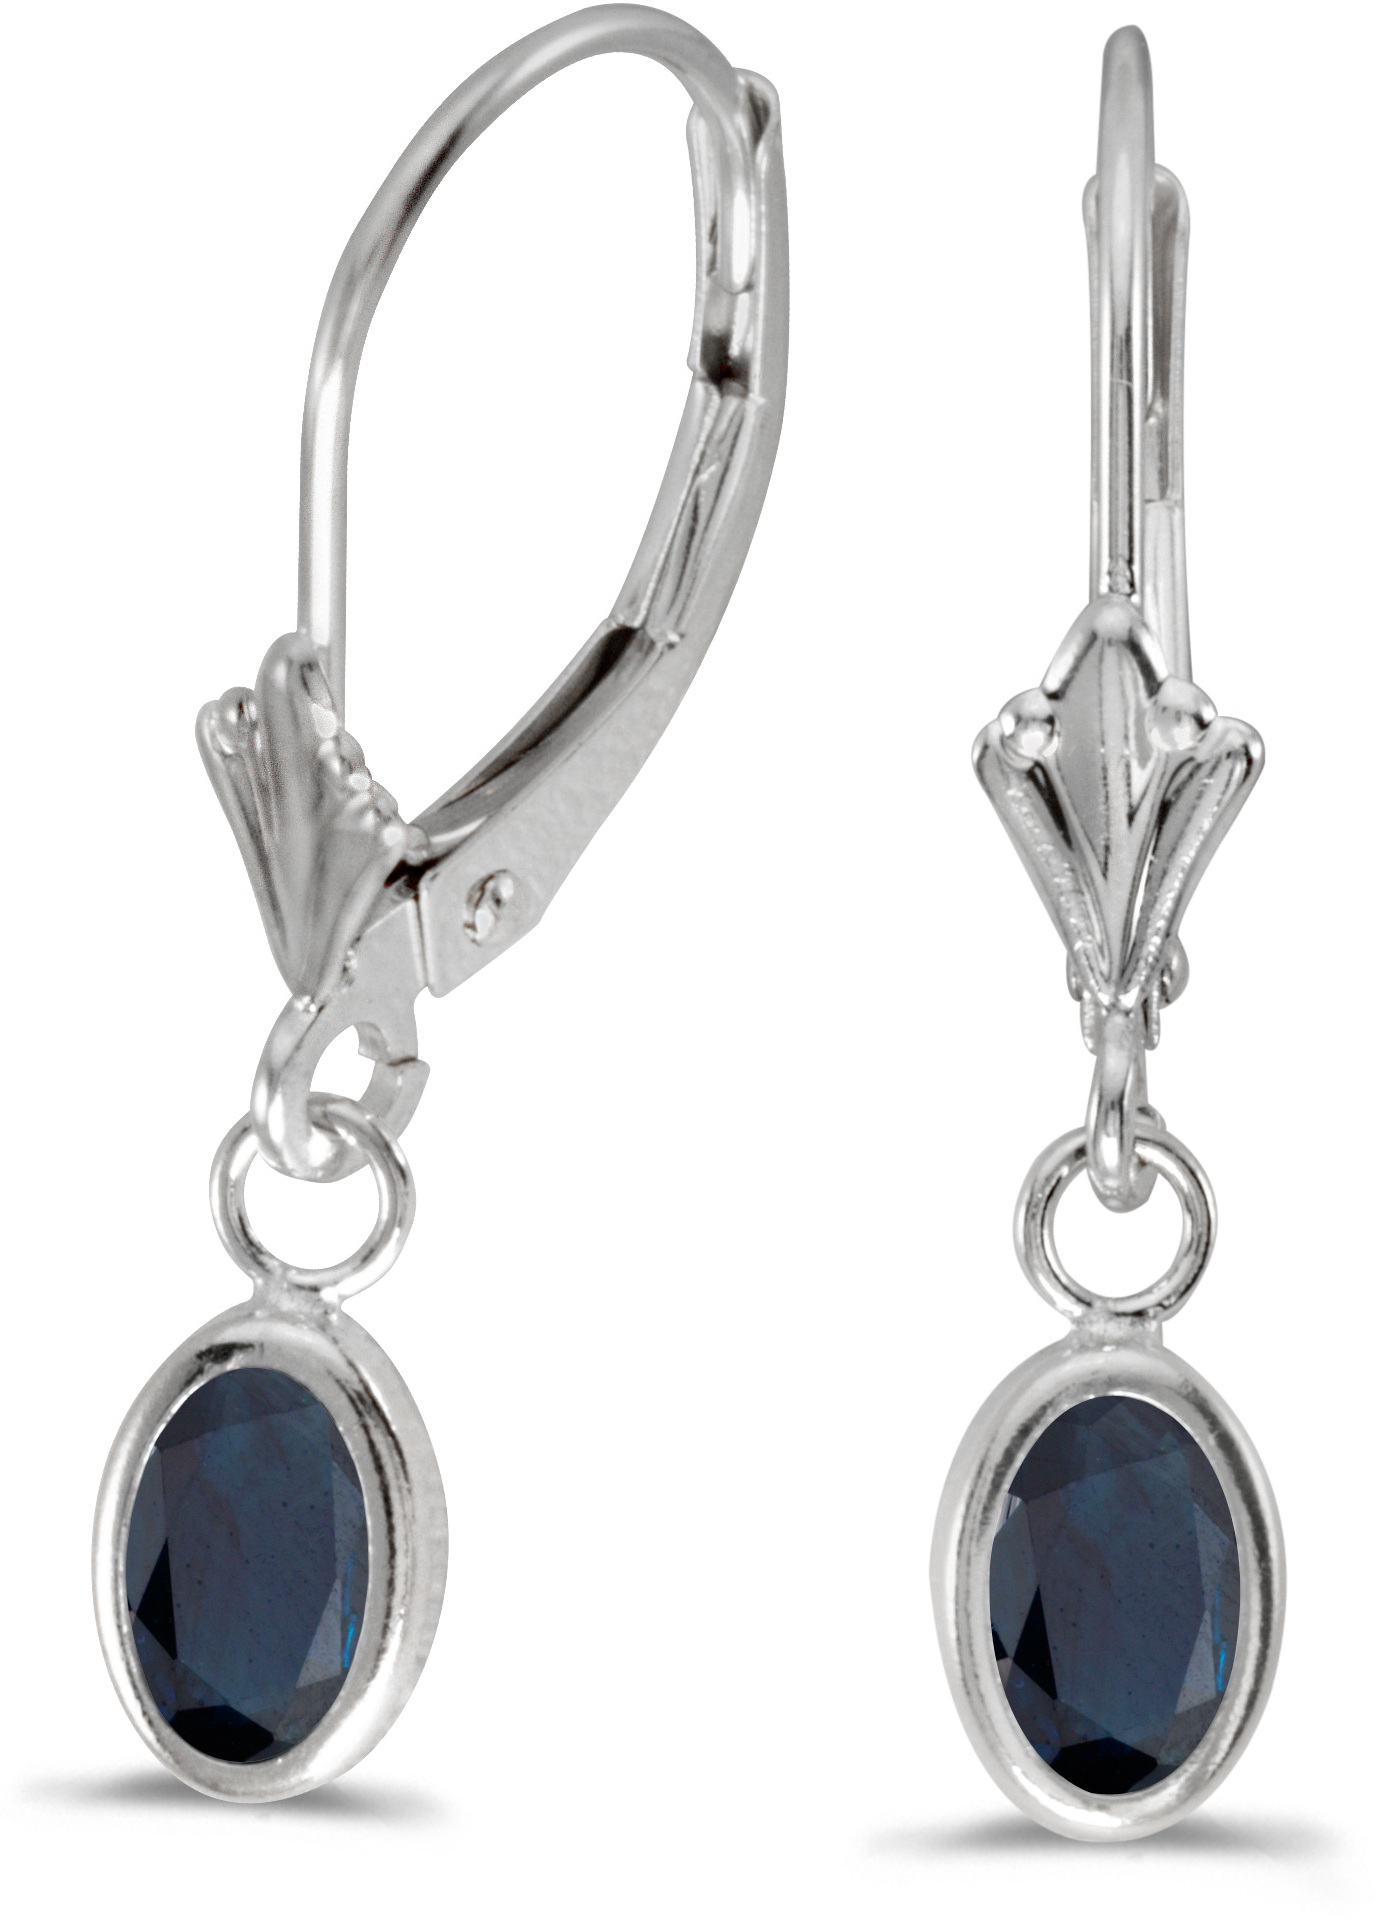 14k White Gold Oval Sapphire Bezel Lever-back Earrings